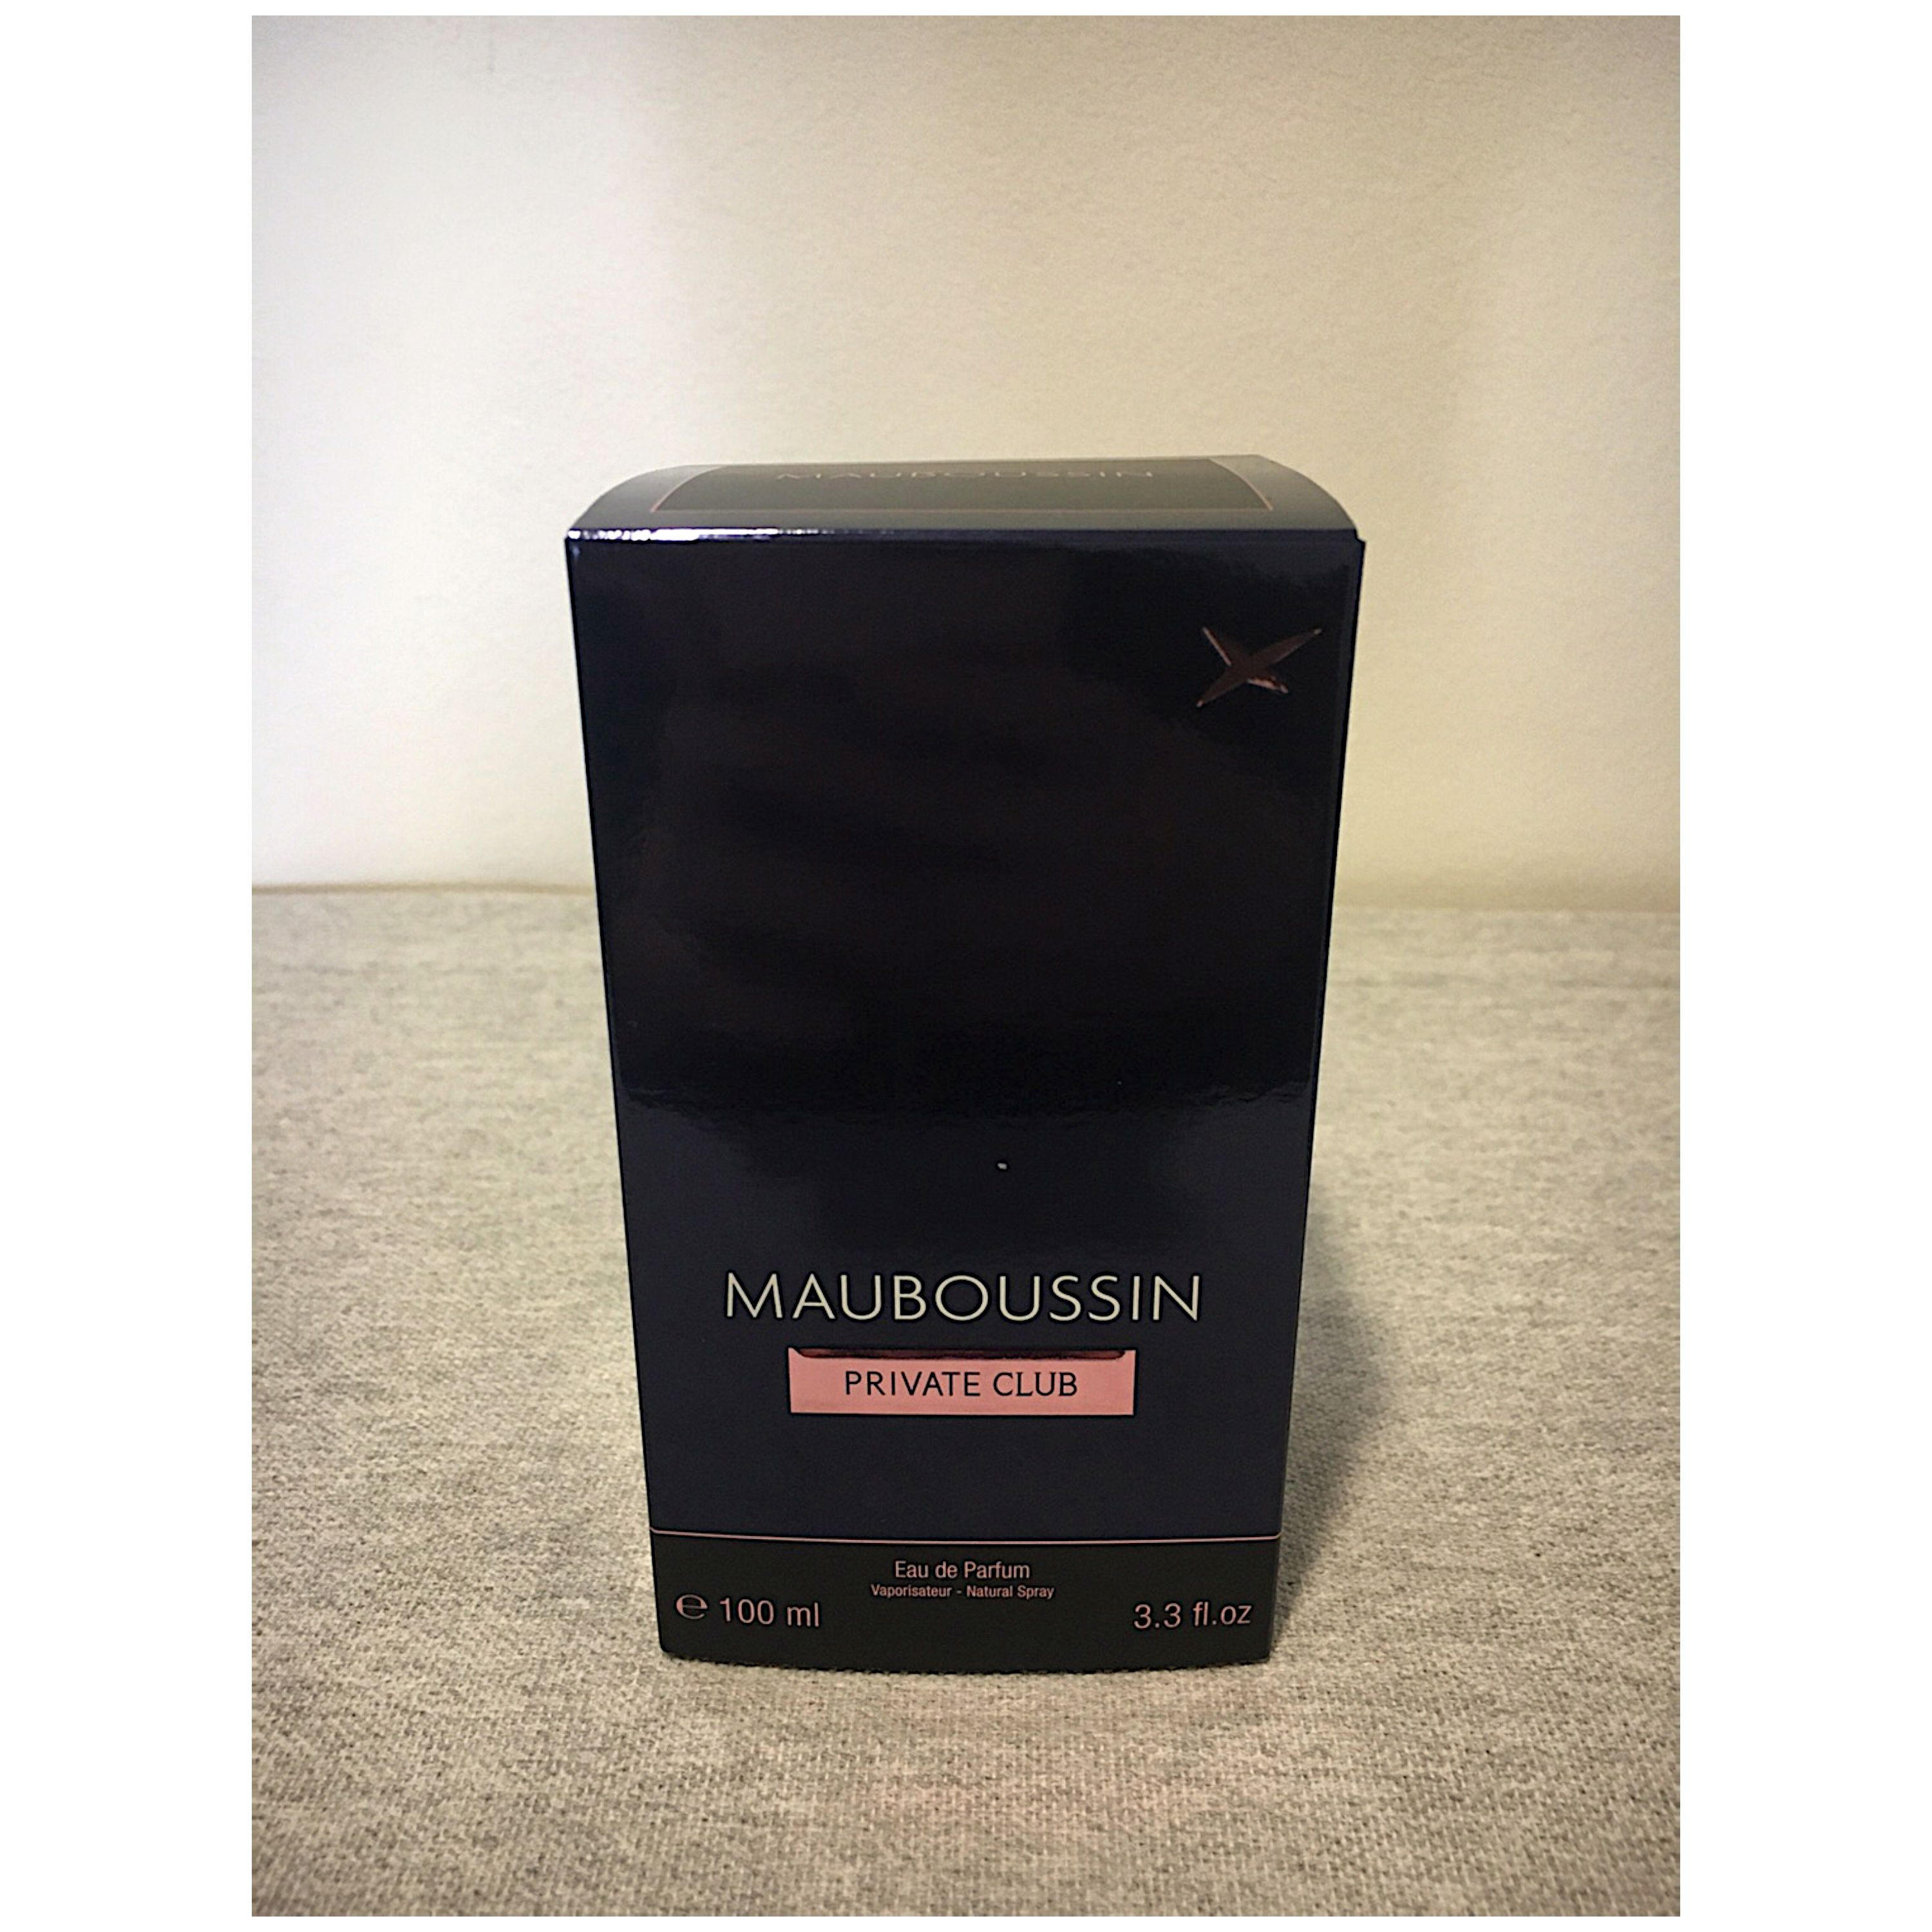 Mauboussin - Private Club eau de parfum 100ml